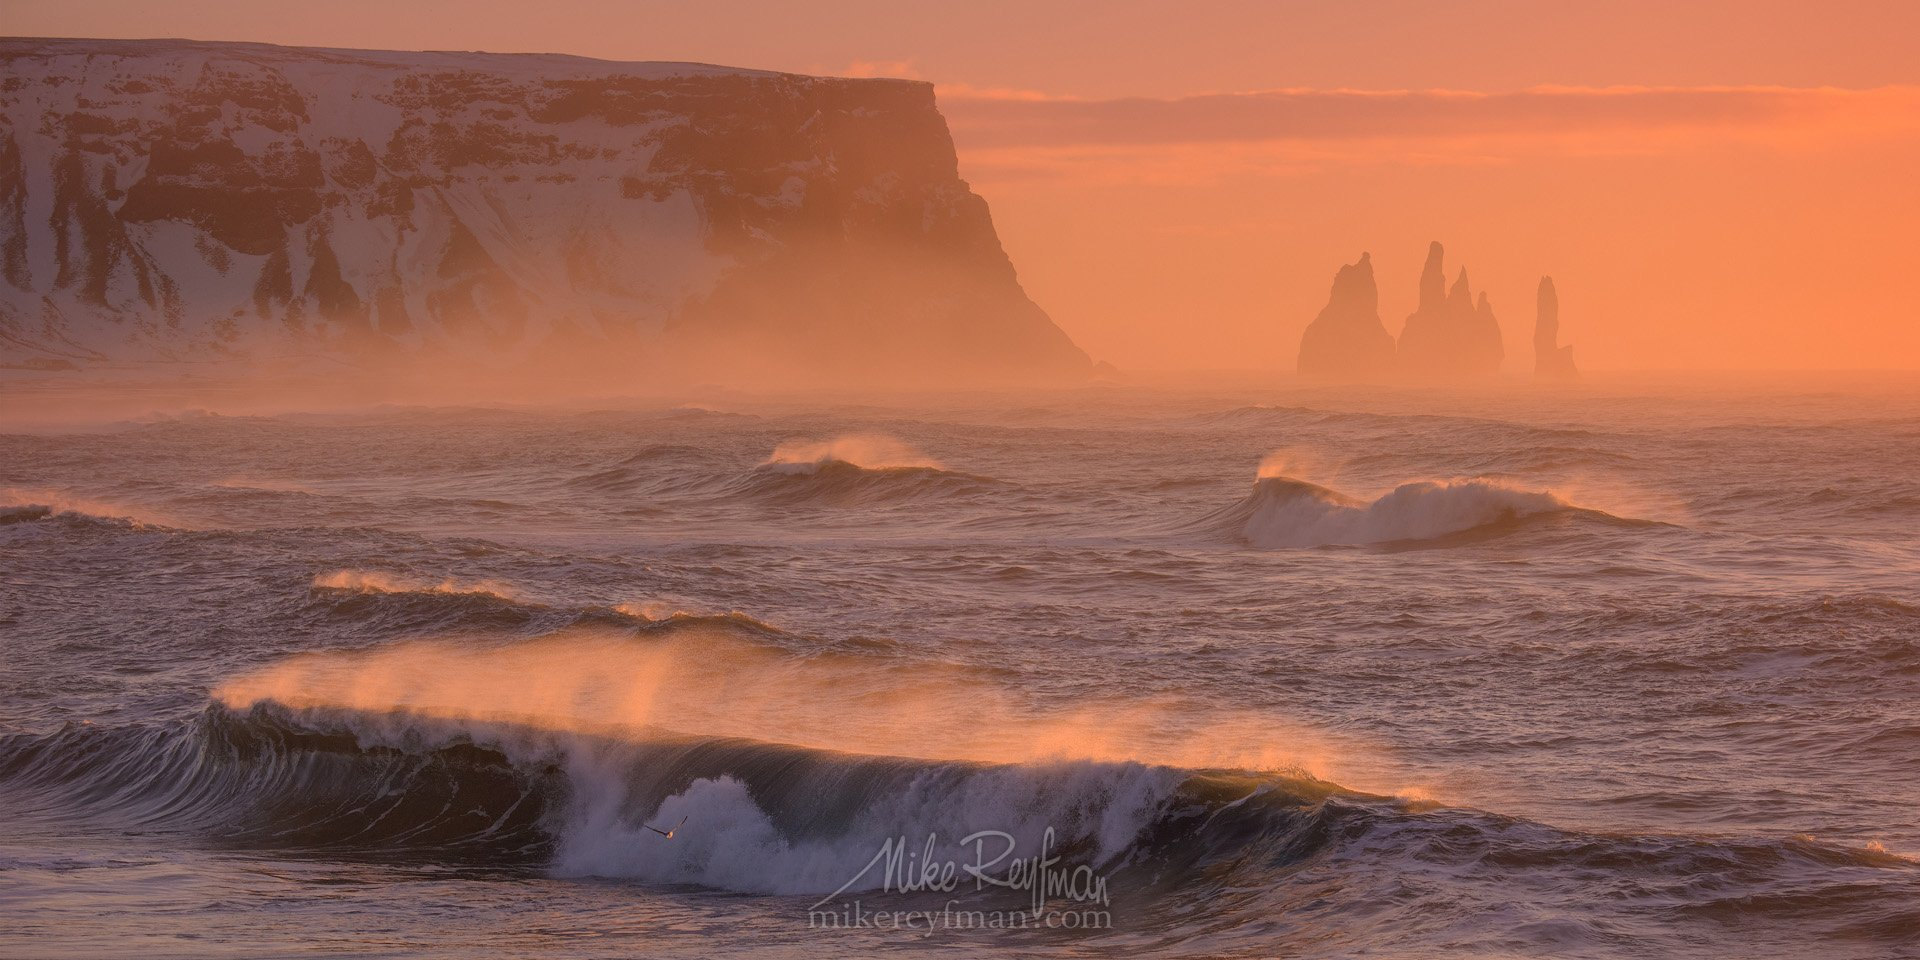 vik, basalt, nature, iceland, photography, sky, sea, motion, pink, surf, storm, horizontal, speed, outdoors, scenic, no people, reynisdrangar, horizon over wate,r reynisfjara, breaking waves, power in nature, south central iceland, Майк Рейфман